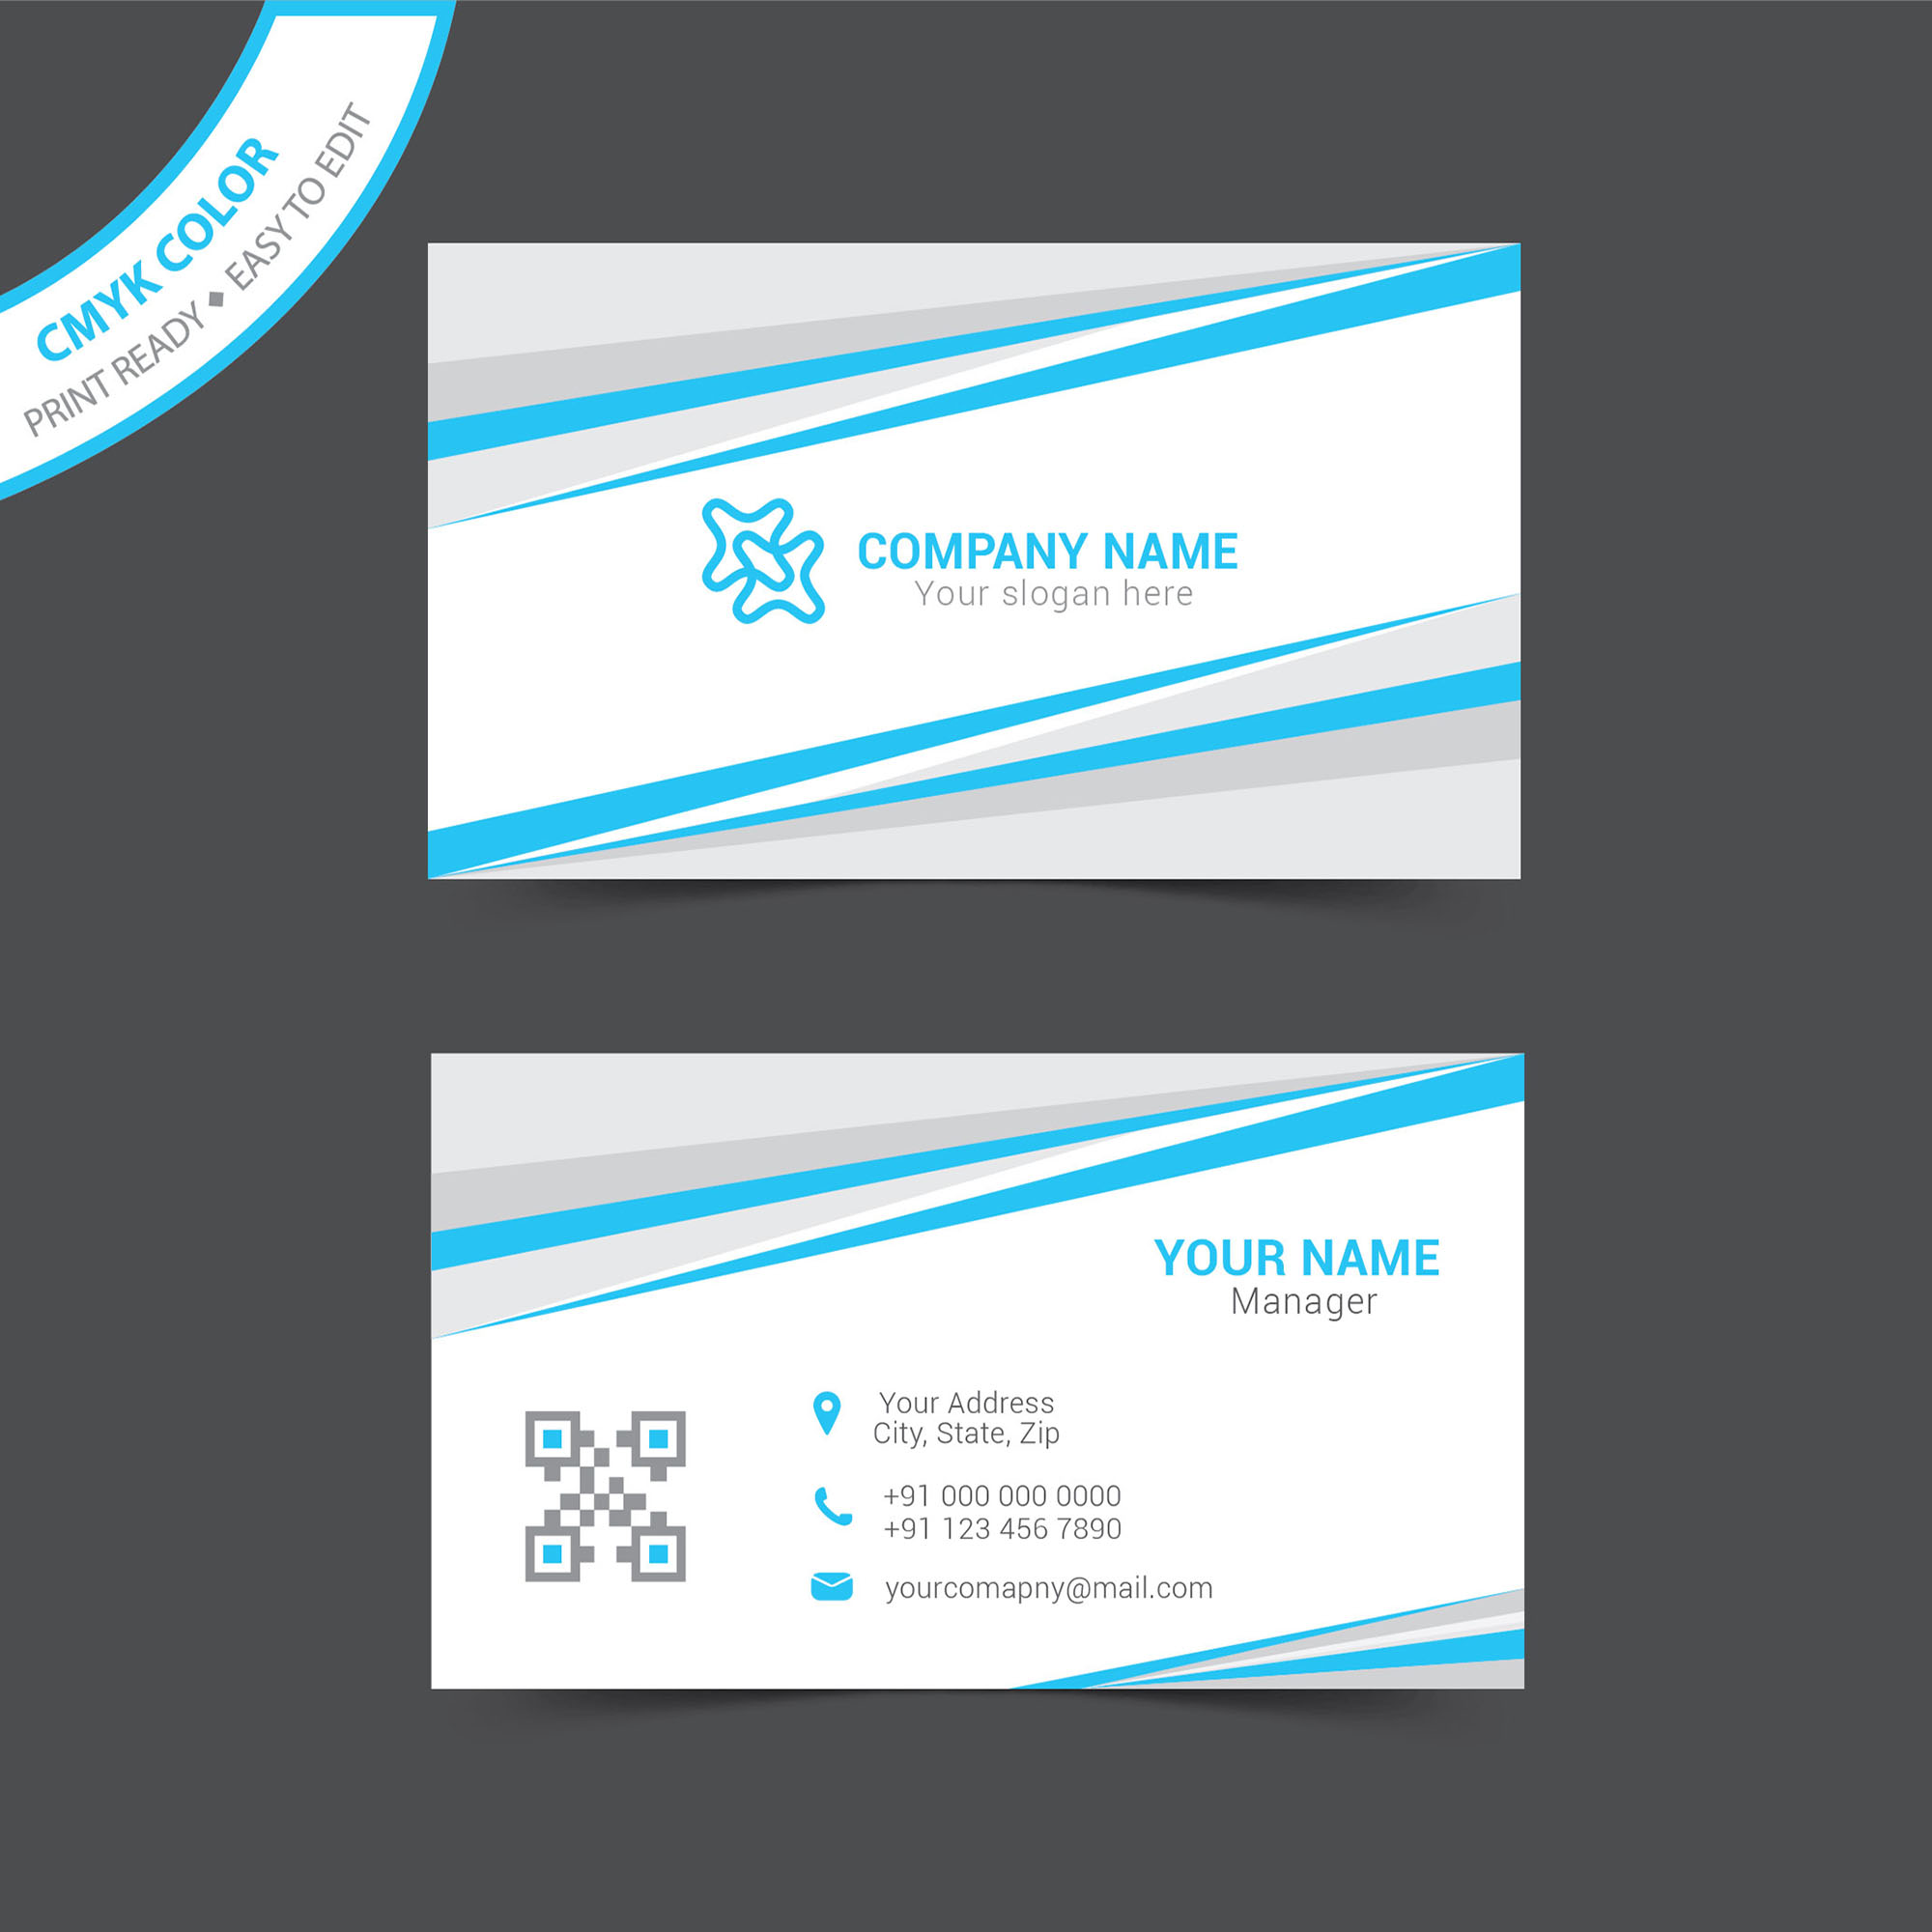 Simple business card template free download wisxi business card business cards business card design business card template design templates cheaphphosting Choice Image